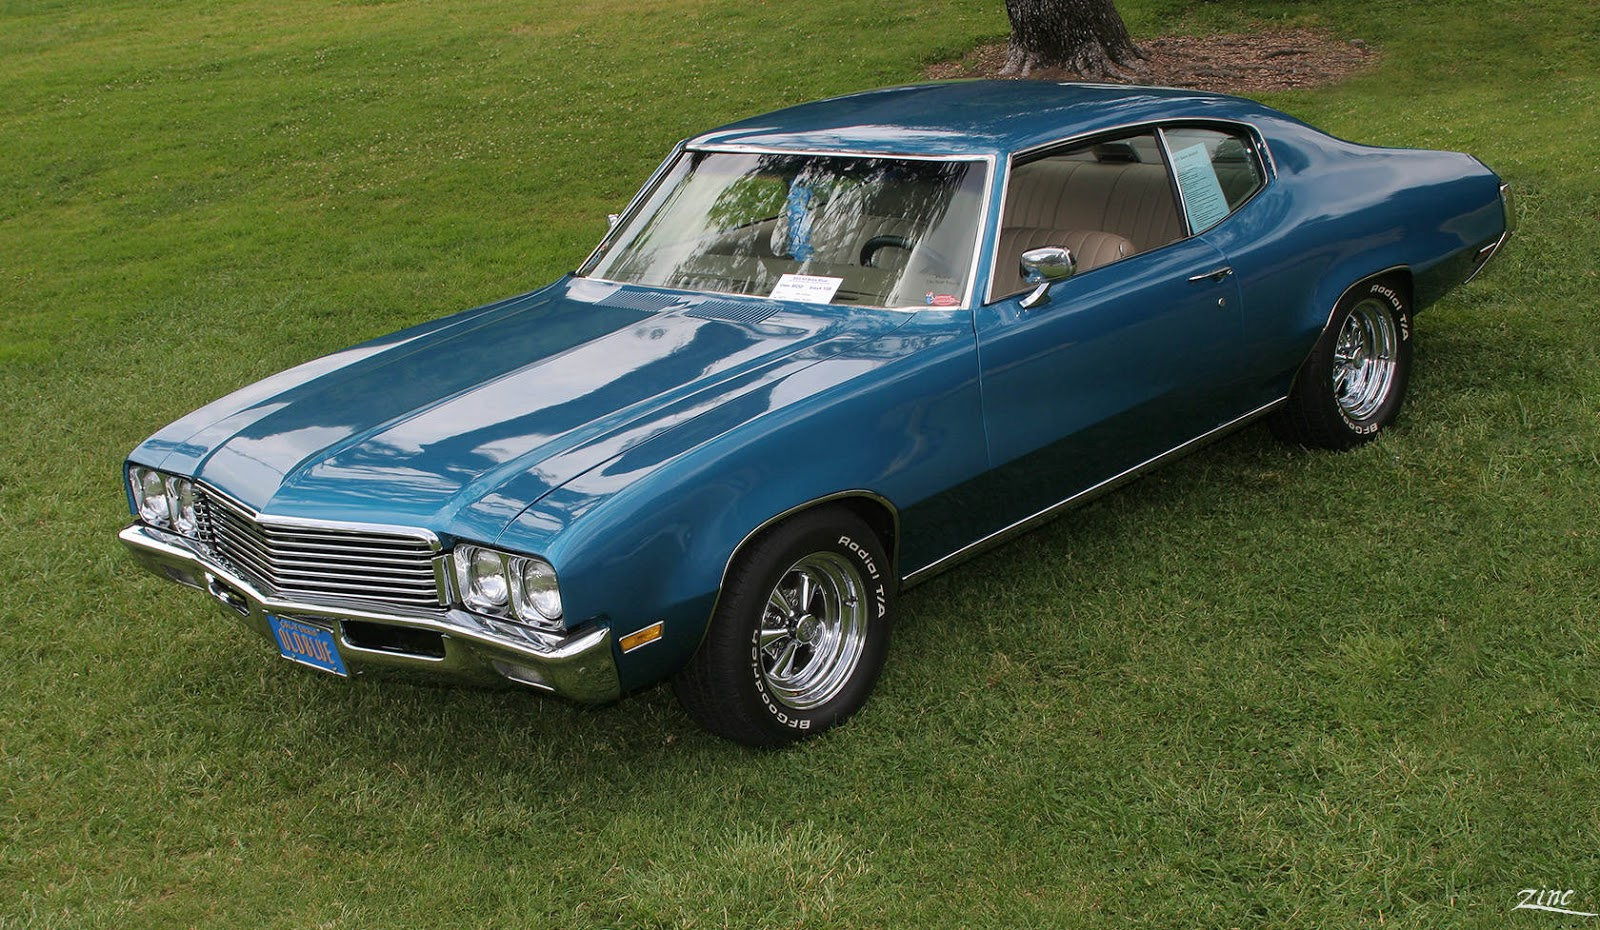 1971 Buick Skylark - This car has muscle! 1971 Skylark two door, great condition. Classic cars!